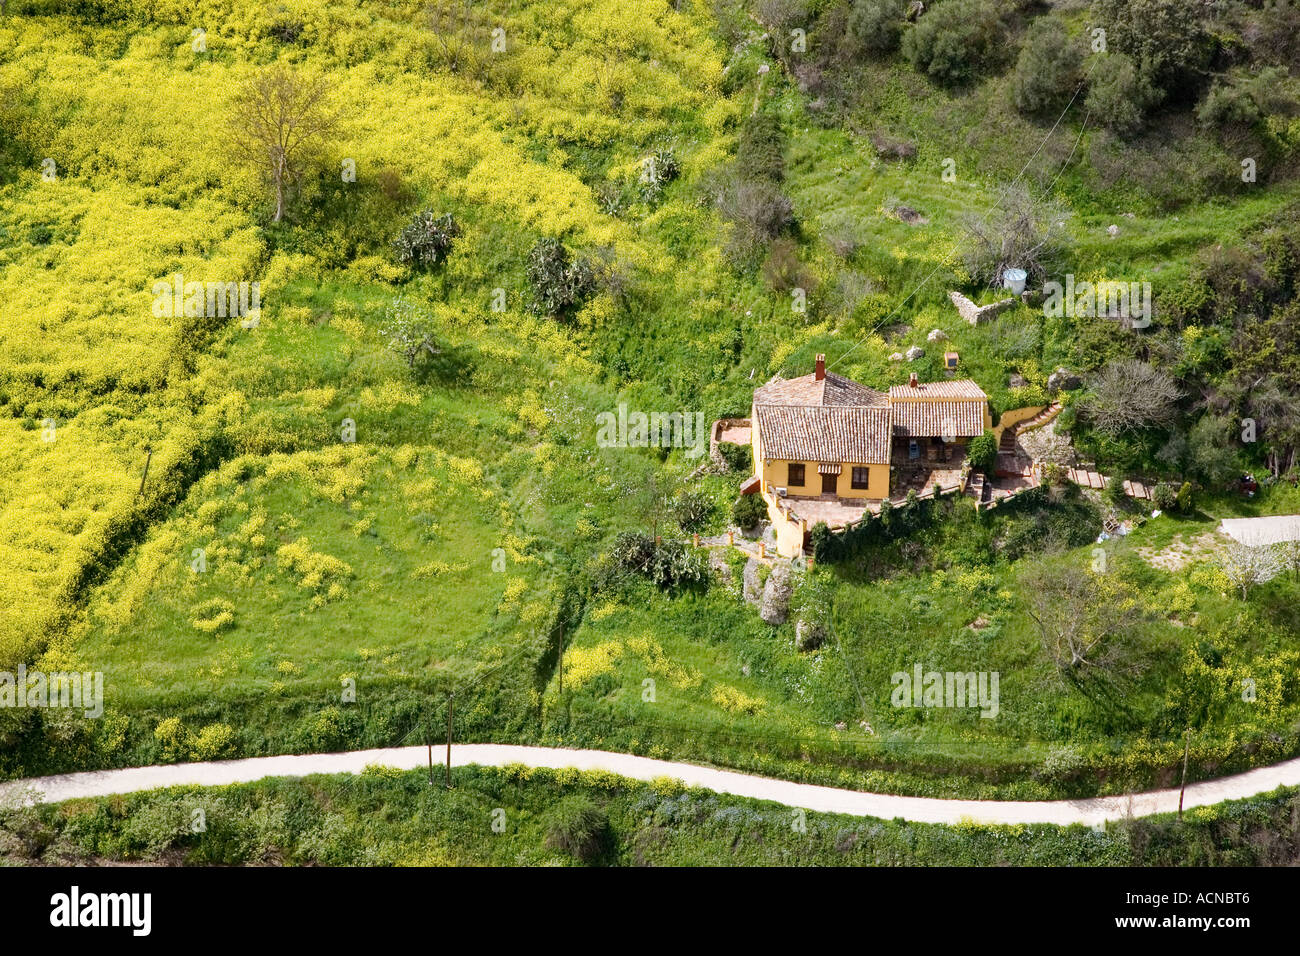 Aerial view of a country house ronda spain stock photo for See images of my house